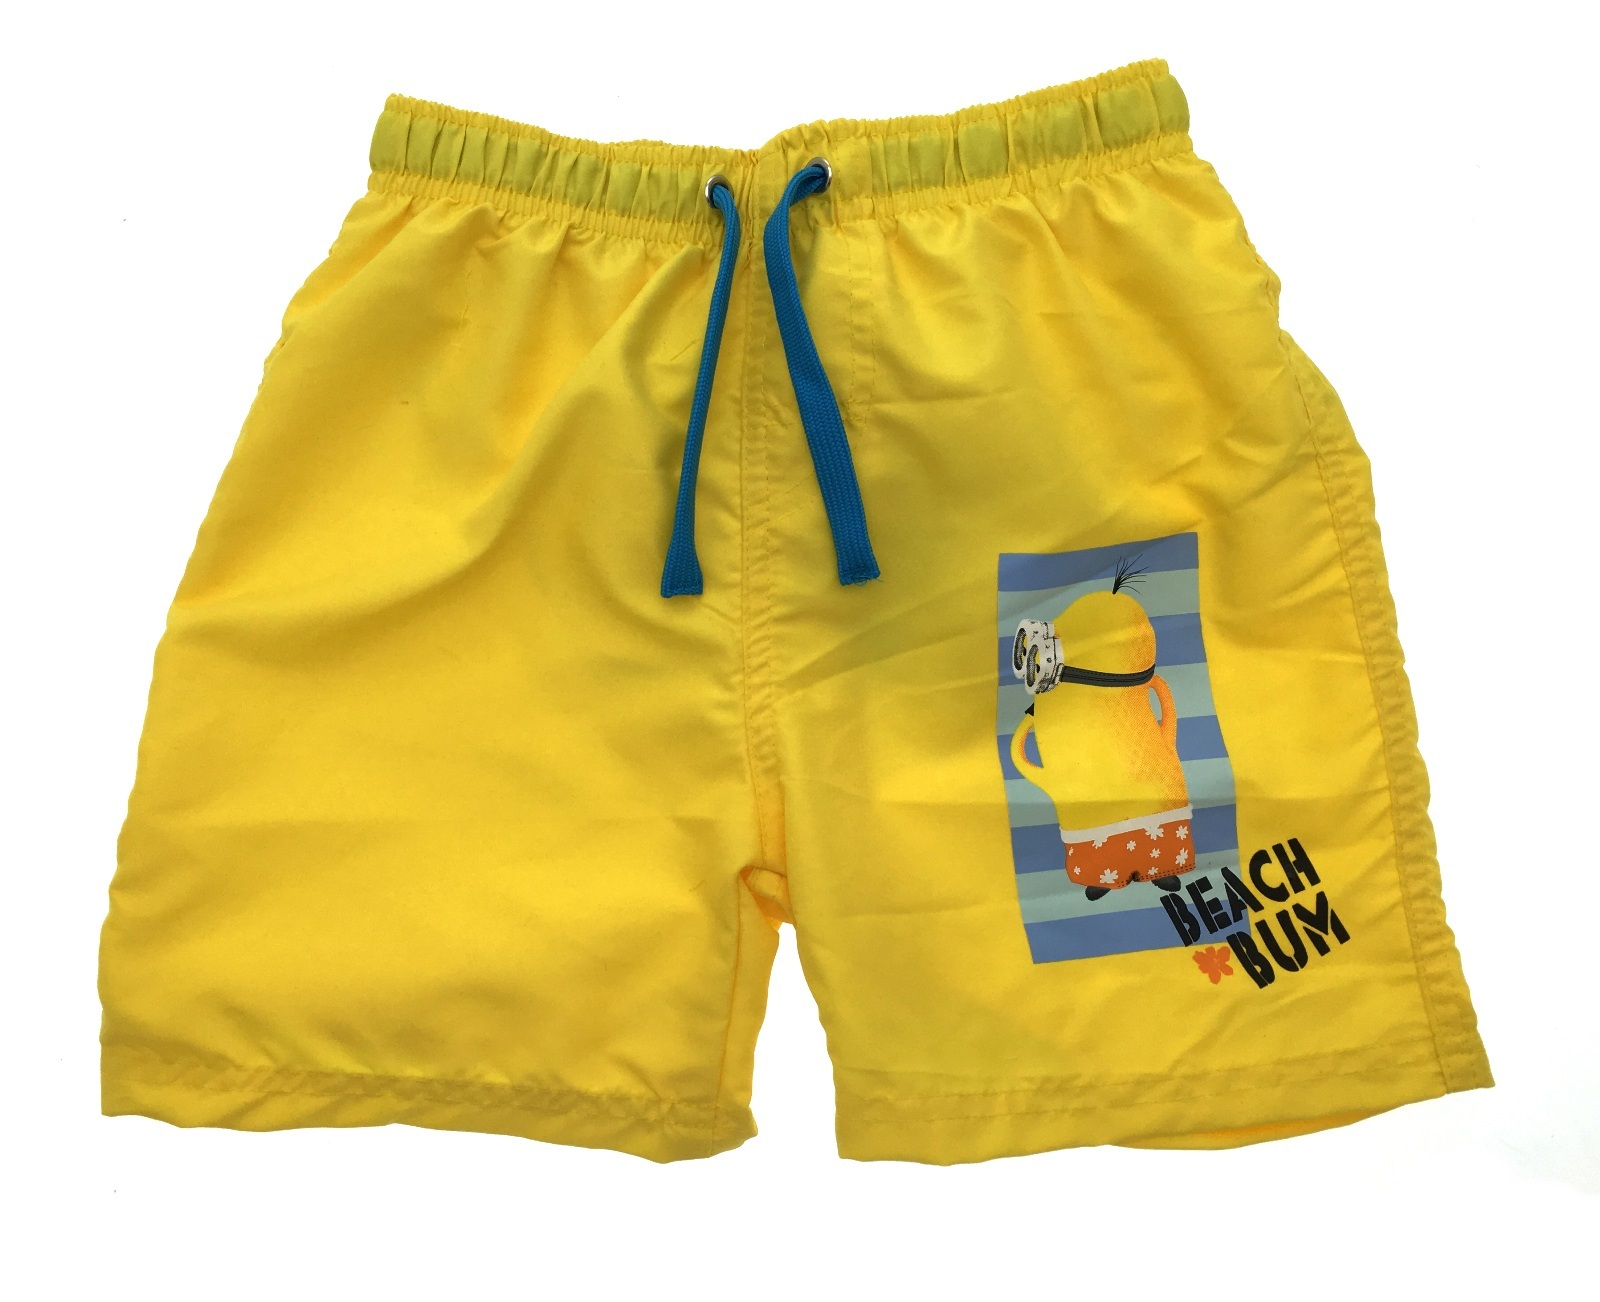 Boys Despicable Me Minions Swim Shorts With Magic Print Swimming Trunks Size